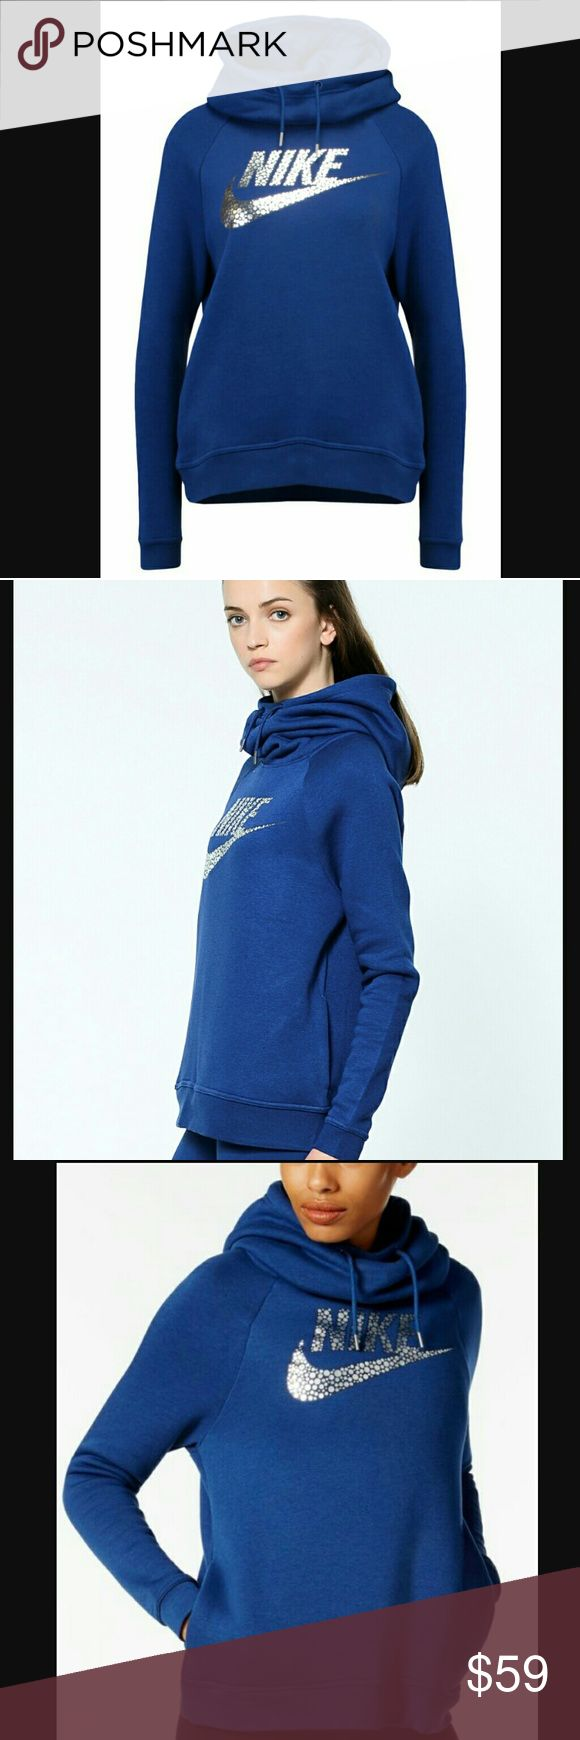 New Nike Metallic Swoosh Hoodie New Nike Metallic Swoosh Hoodie. Super-deep side pockets. Funnel Neck Deep Hood with Drawstring. Beautiful, rich teal & silver metallic logo. **Stock photos included so you can see how it looks on. So Chic I can only let it go if the price is right💯💙!! Nike Tops